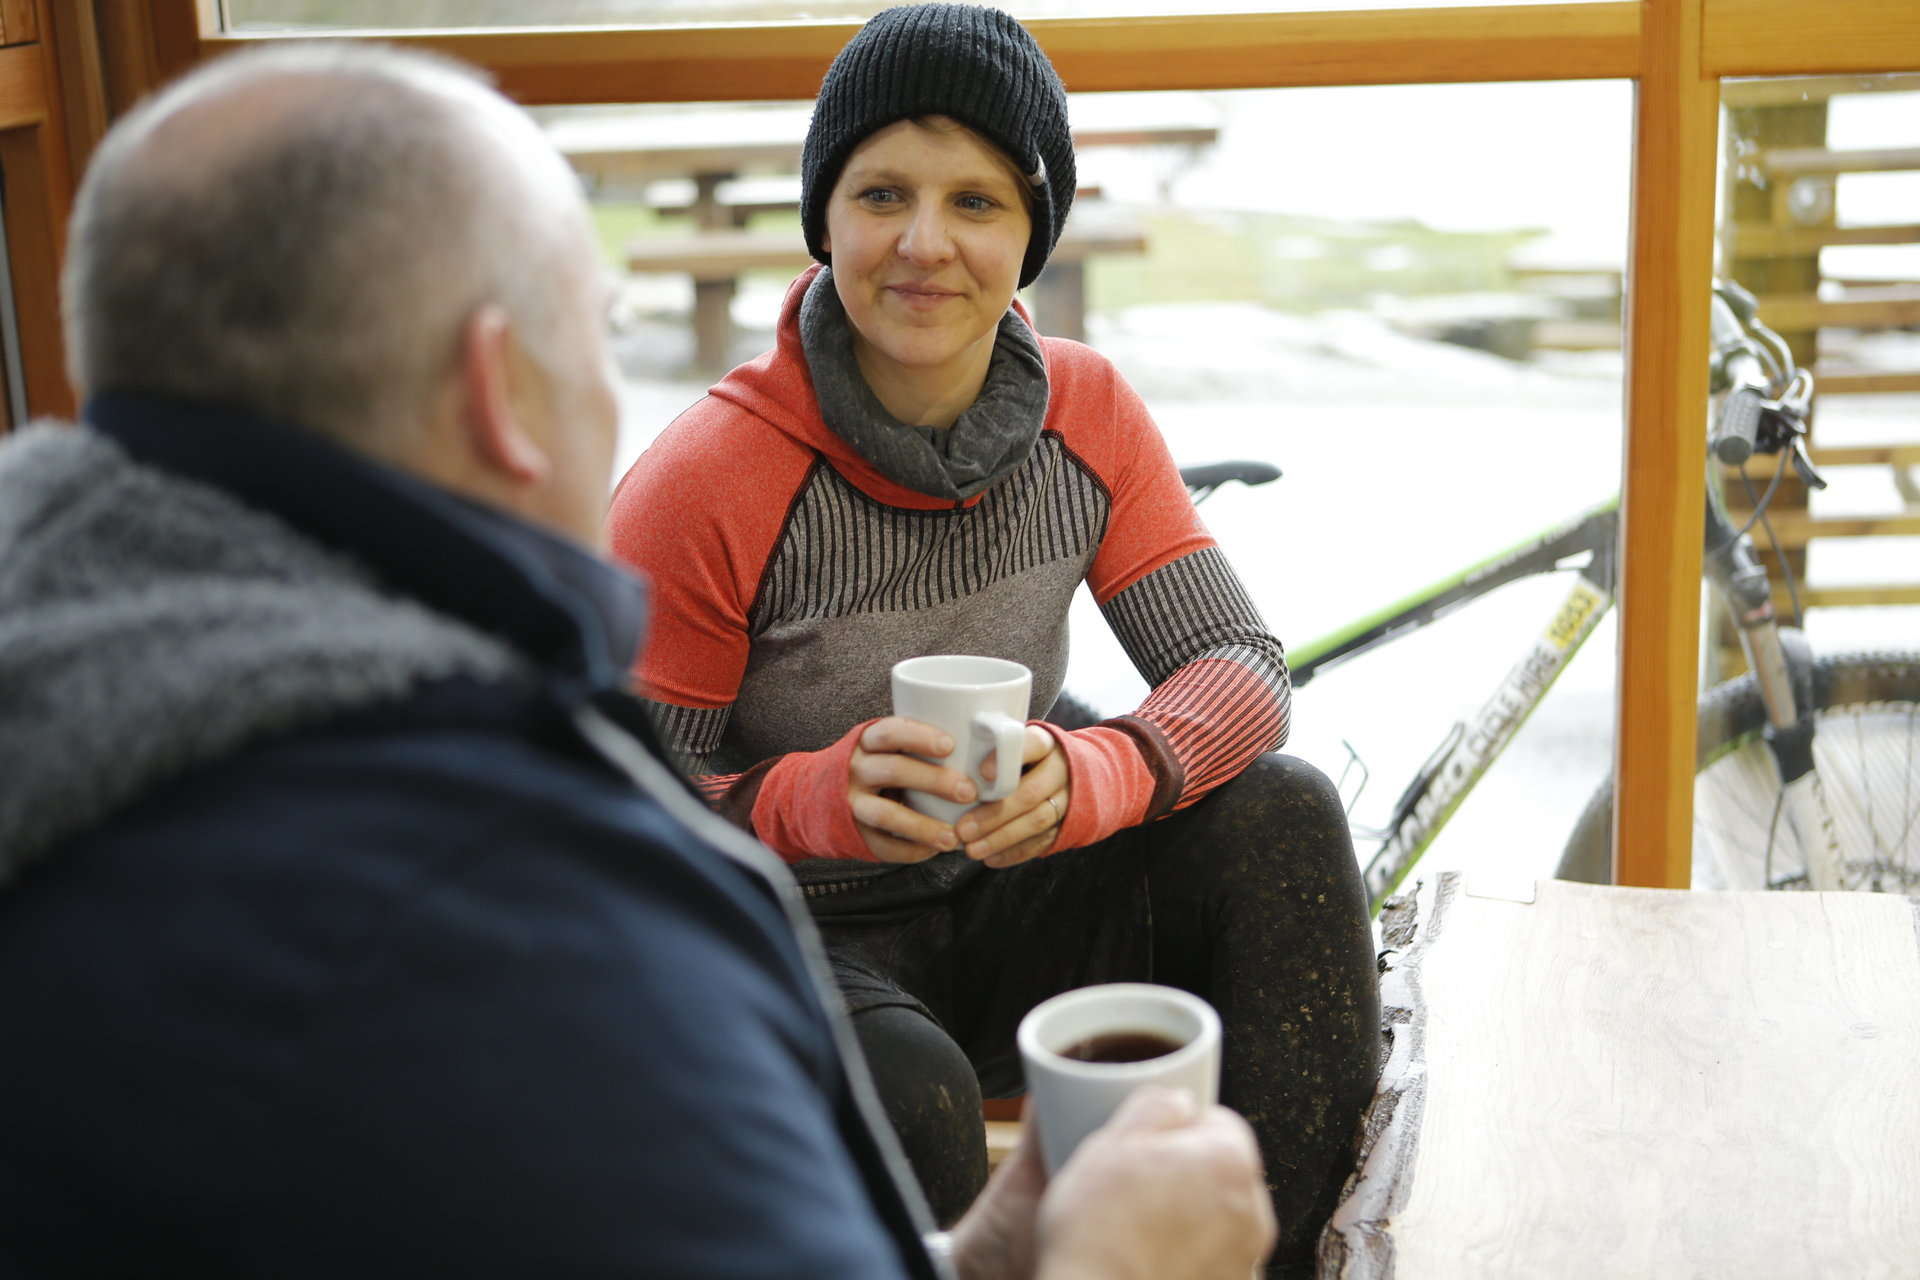 Conversation at Cobtree Manor Park Cafe